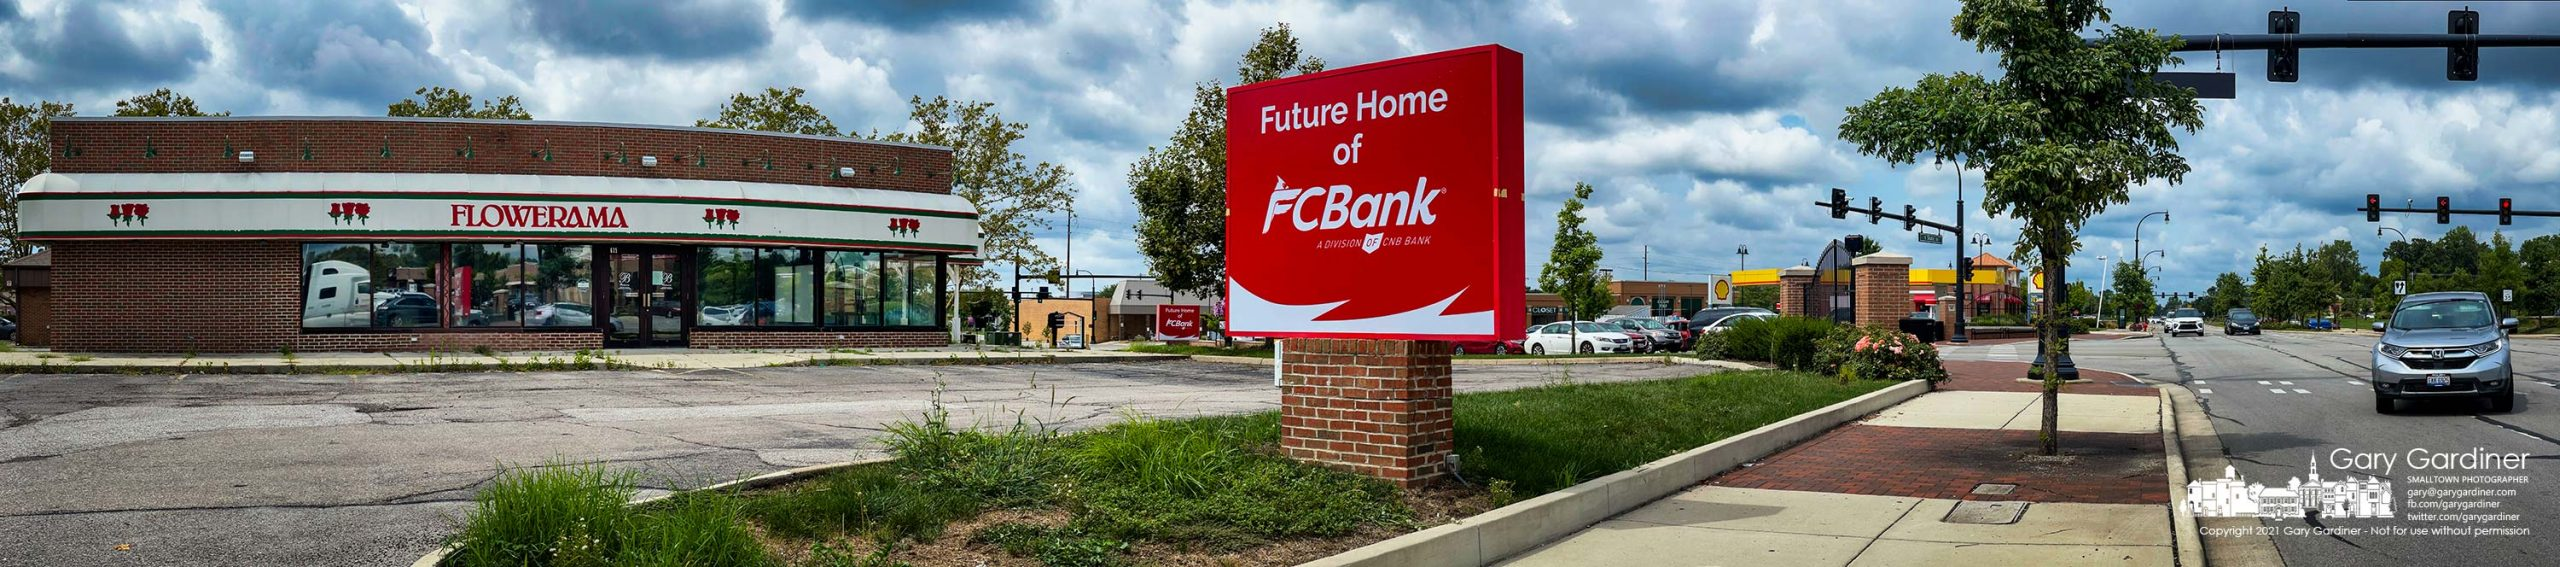 The former Flowerama signs at the corner of South State Street and Schrock road now display signs for the bank that will bn e taking over the space. My Final Photo for Aug. 30, 2021.